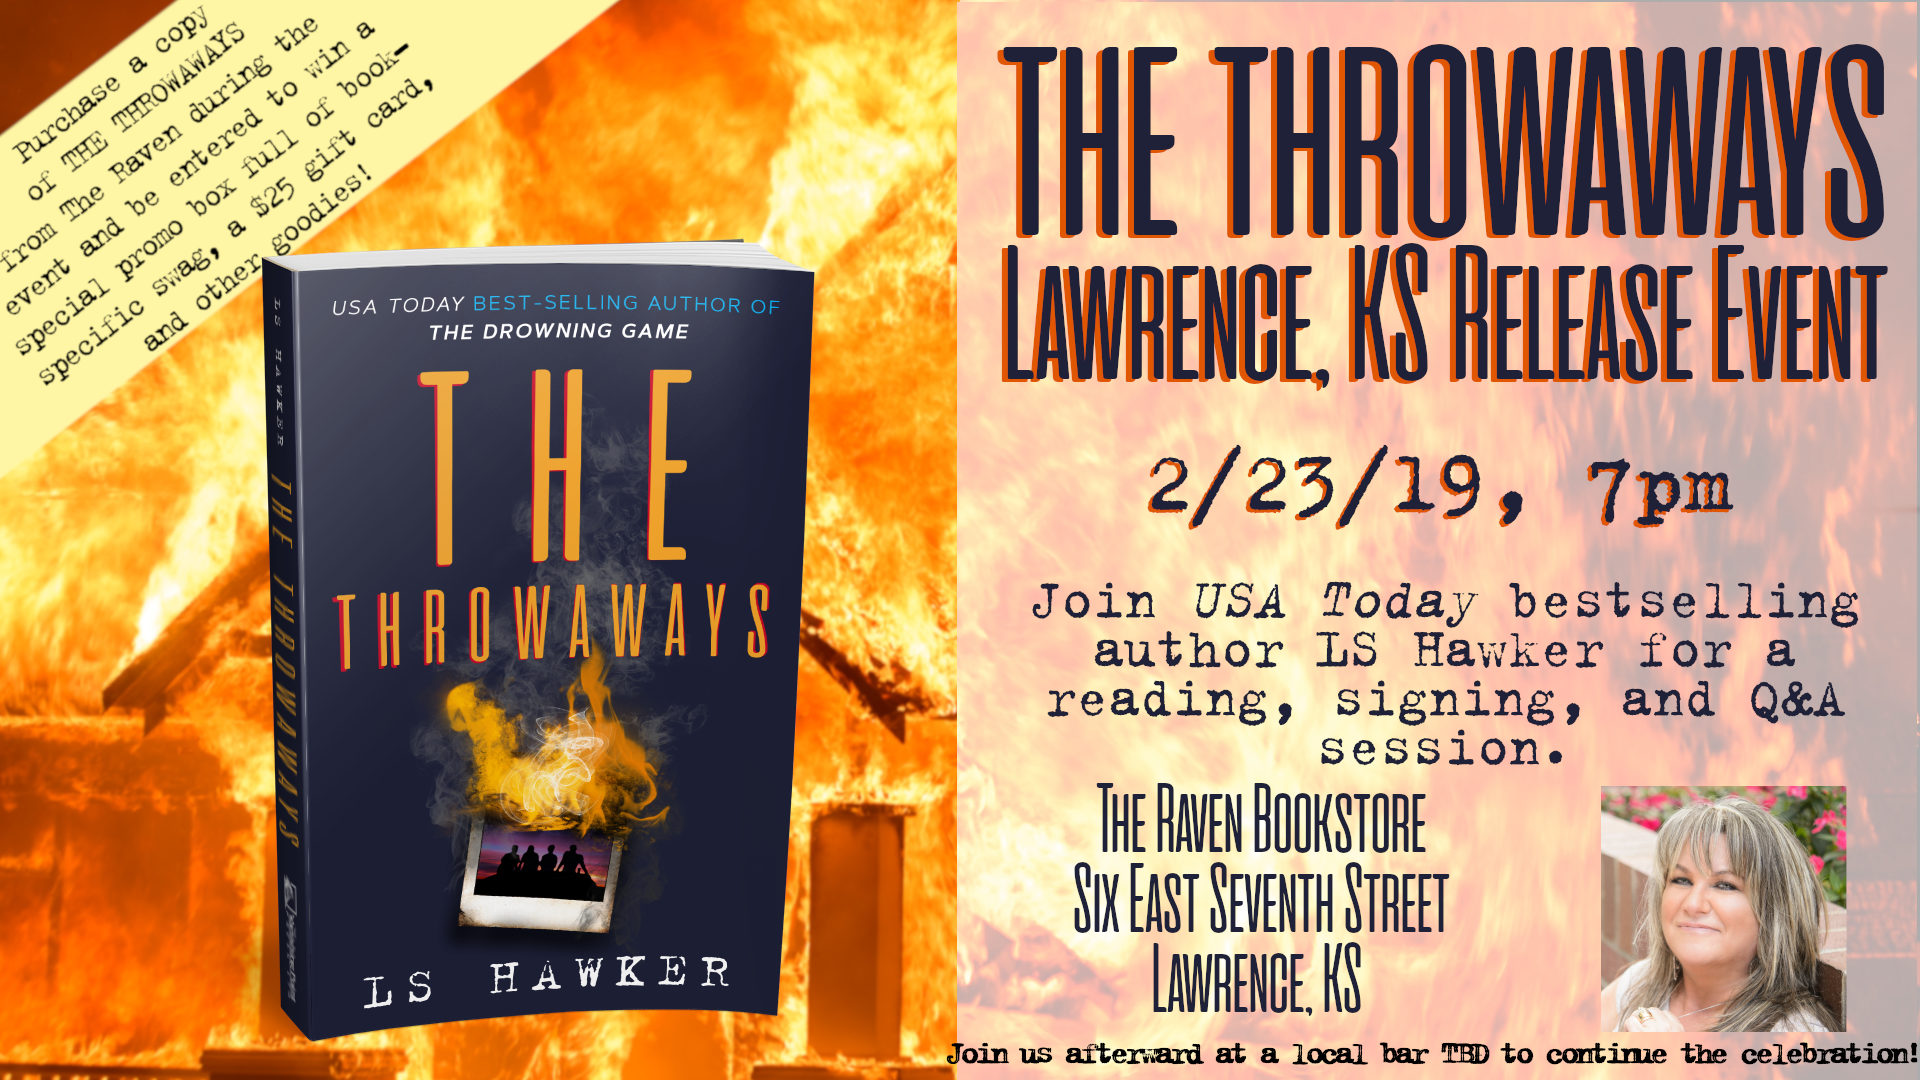 THE THROWAWAYS Lawrence, KS Release Event